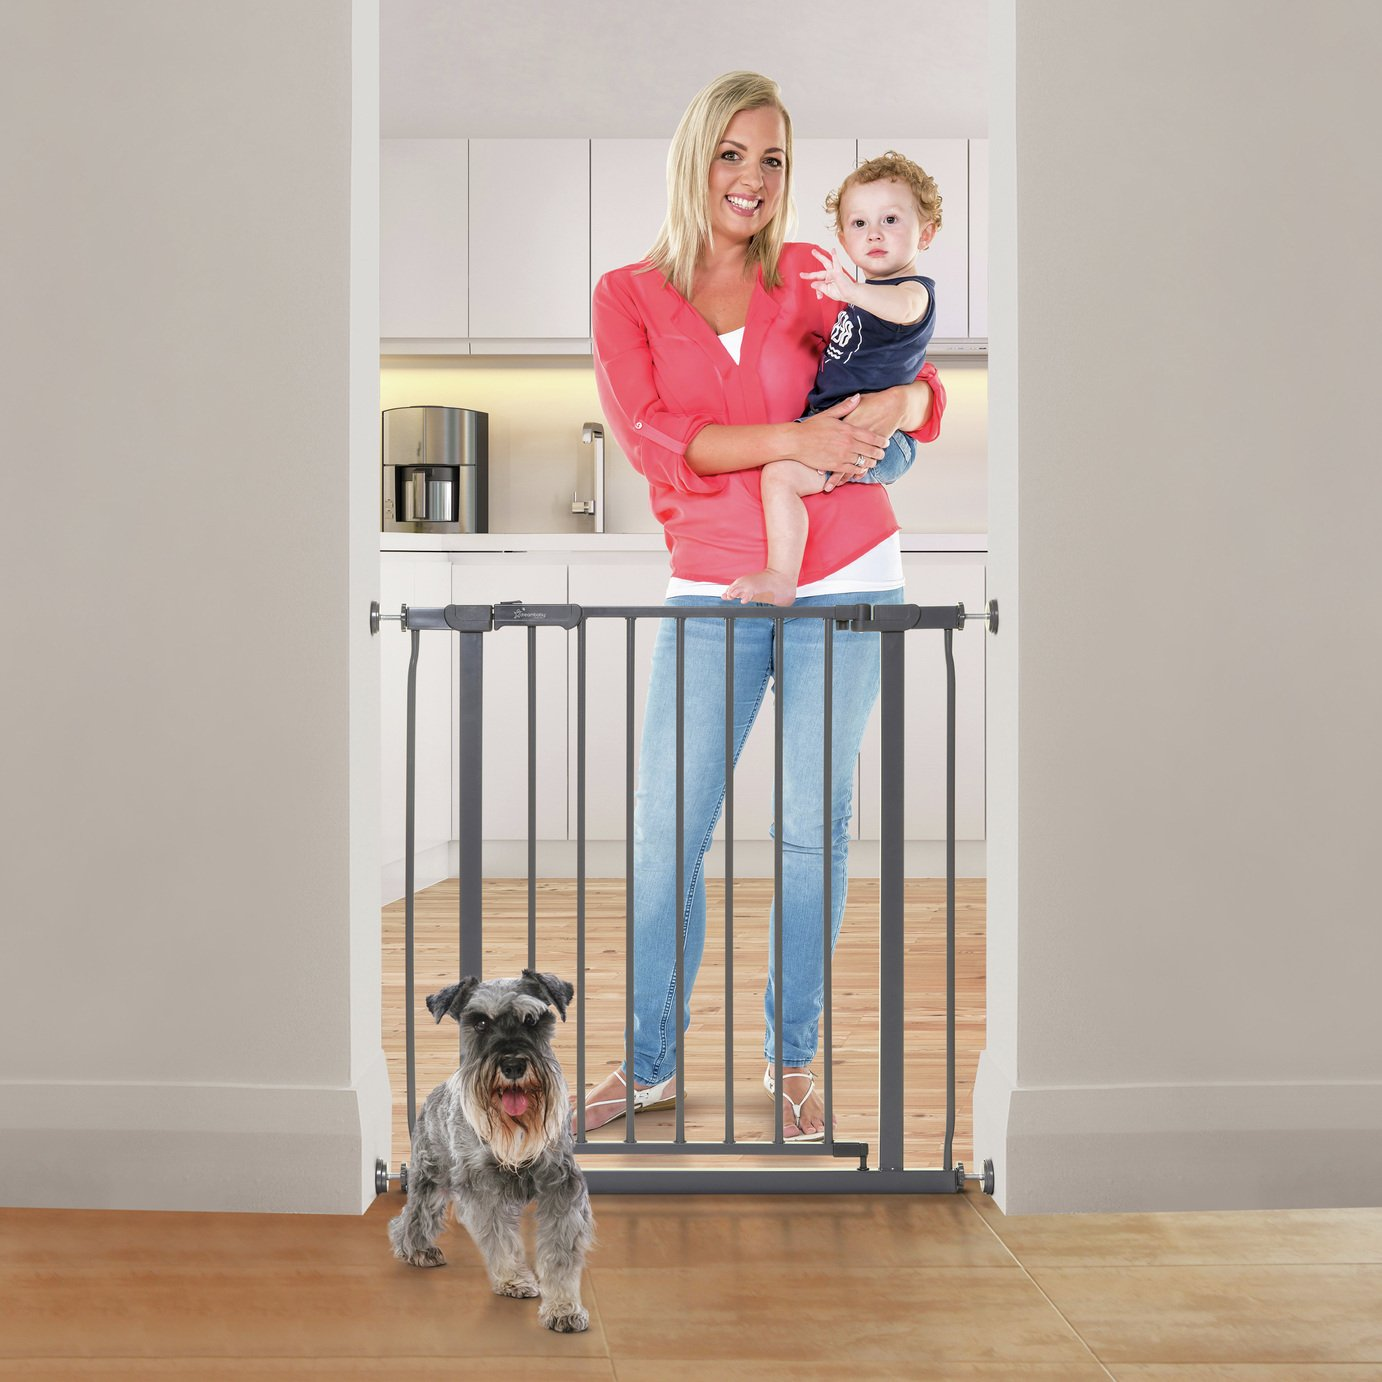 Dreambaby Ava Safety Gate - Charcoal (75-81cm) Pressure Fit